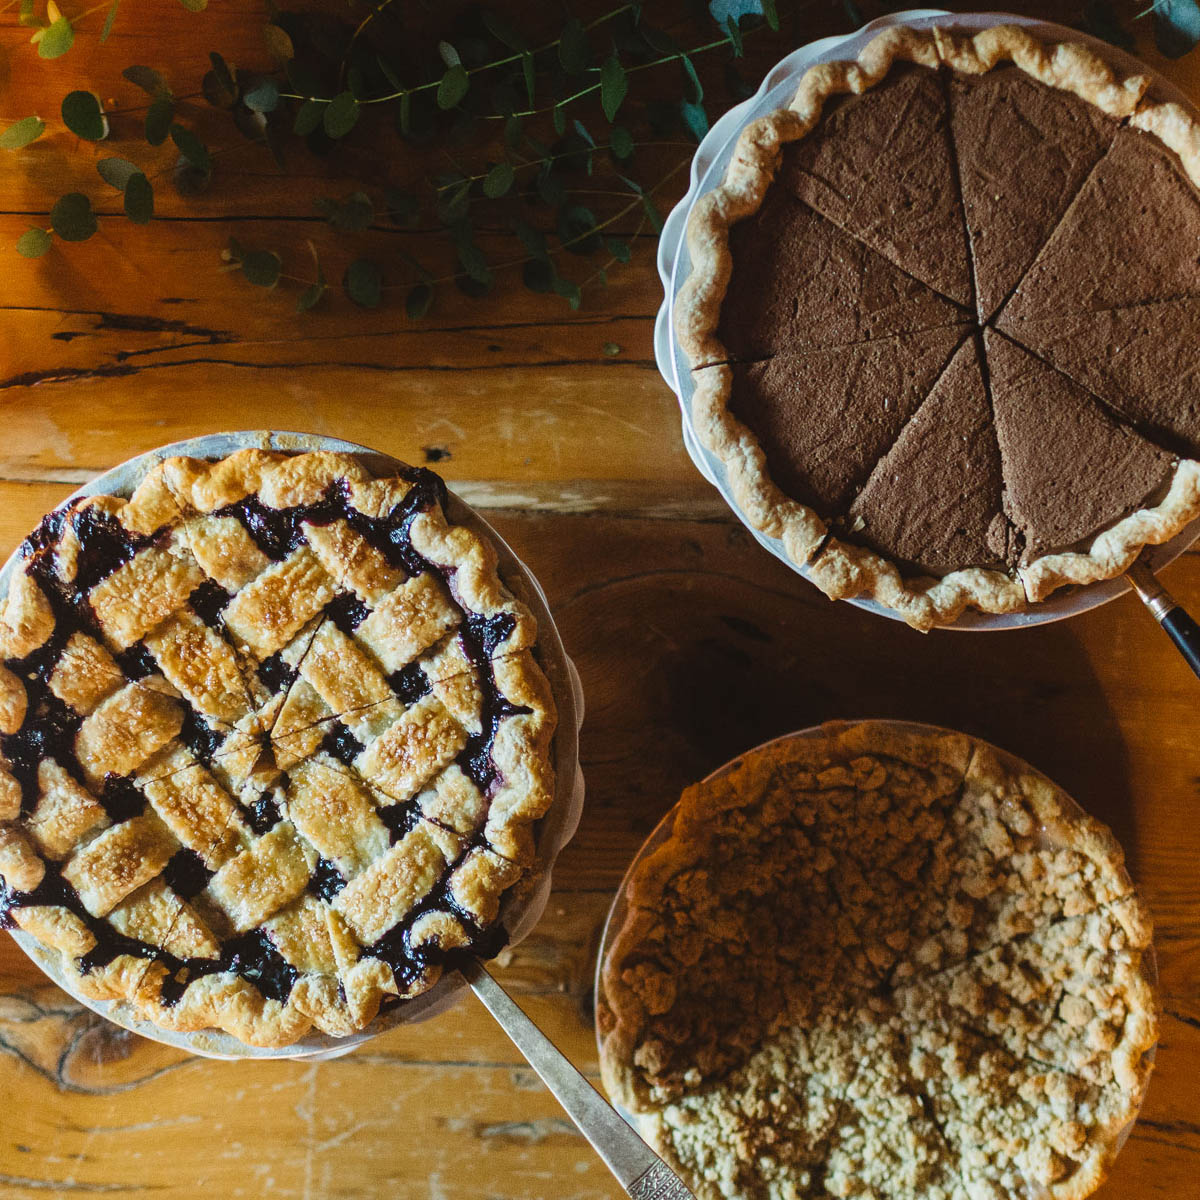 House-baked pies, or novelty mini-cakes round out Big Tree Catering's Family-Style dinner.